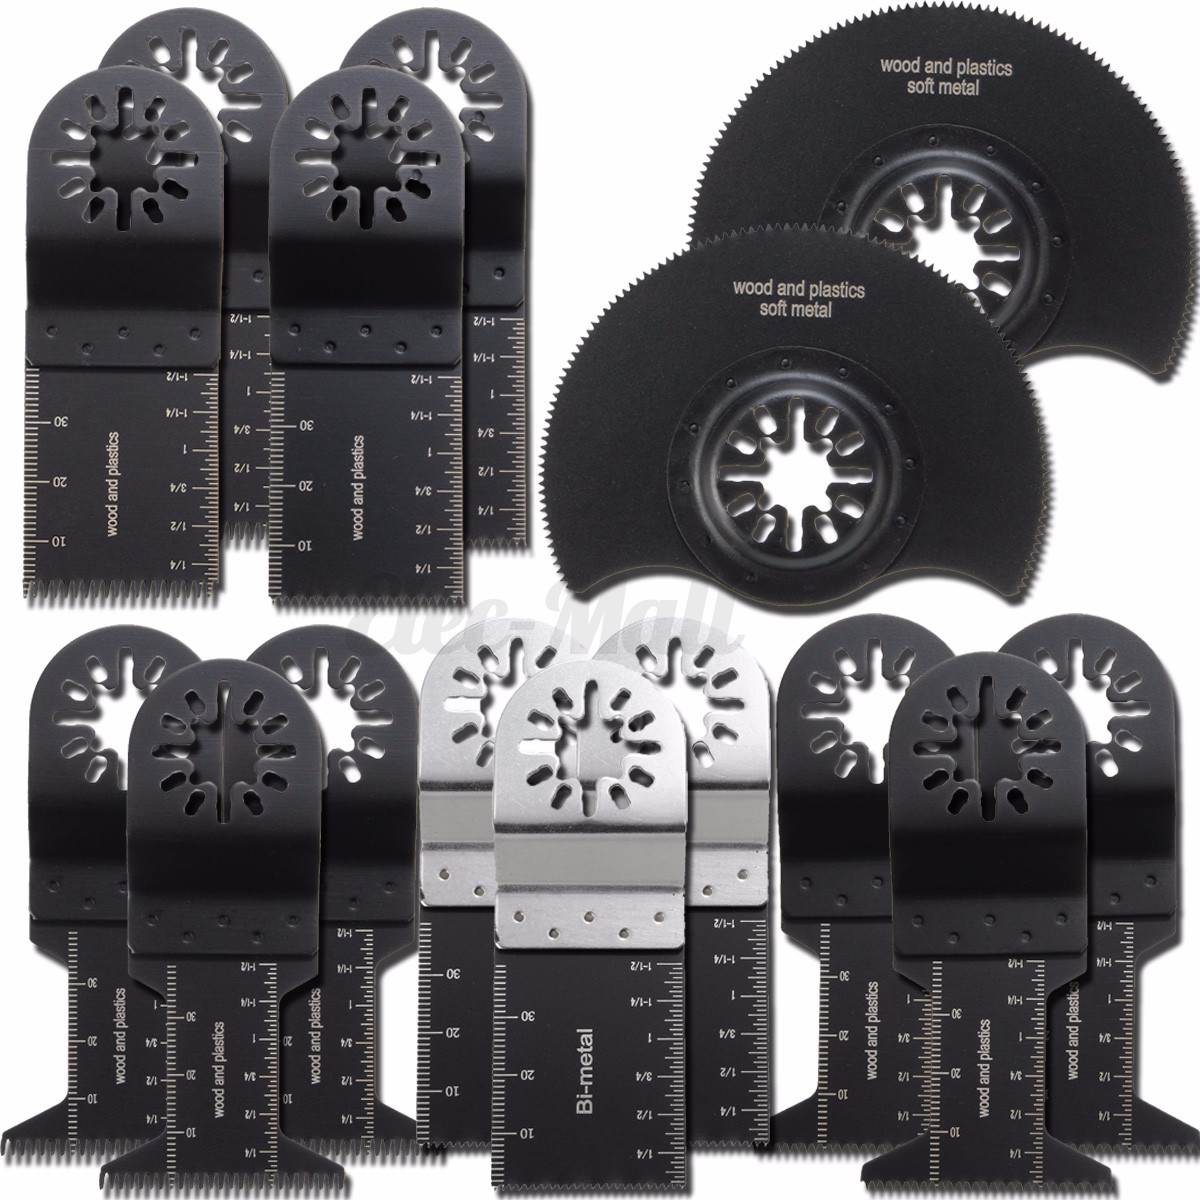 15Pcs Oscillating Saw Blades MultiTool For FEIN MULTIMASTER RIDGID ...